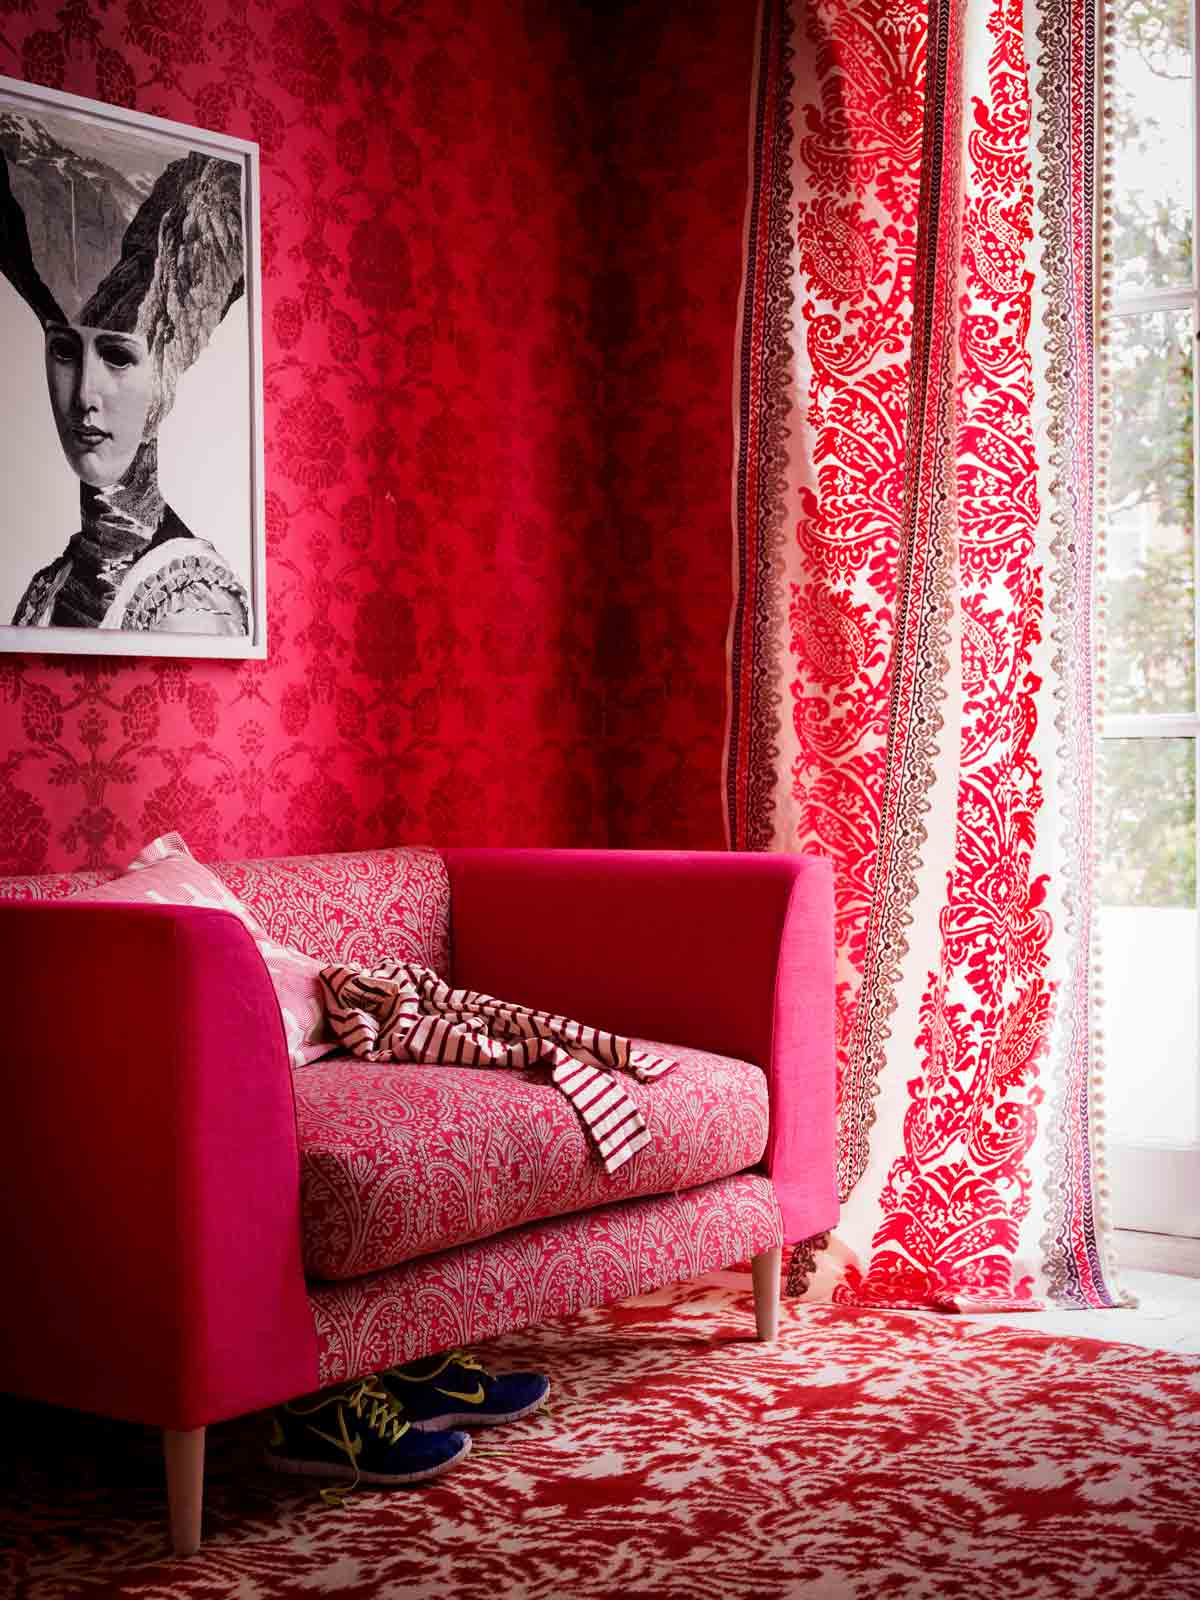 Interior Design Trend 2018 2019 Decorating With Red